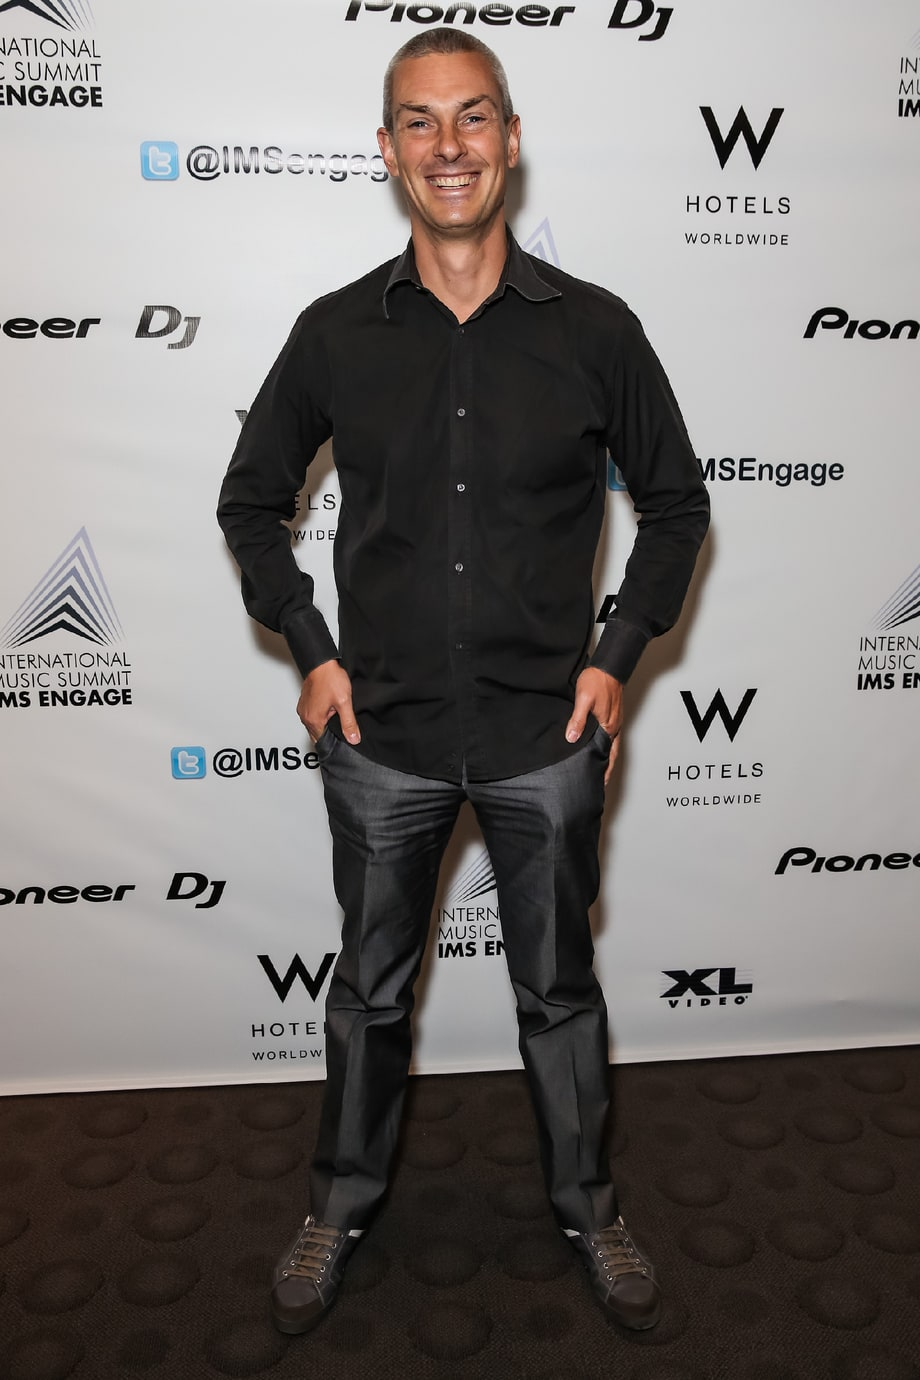 Patrick Moxey, Ultra Music, Owner; Sony Dance/Electronic Music, President